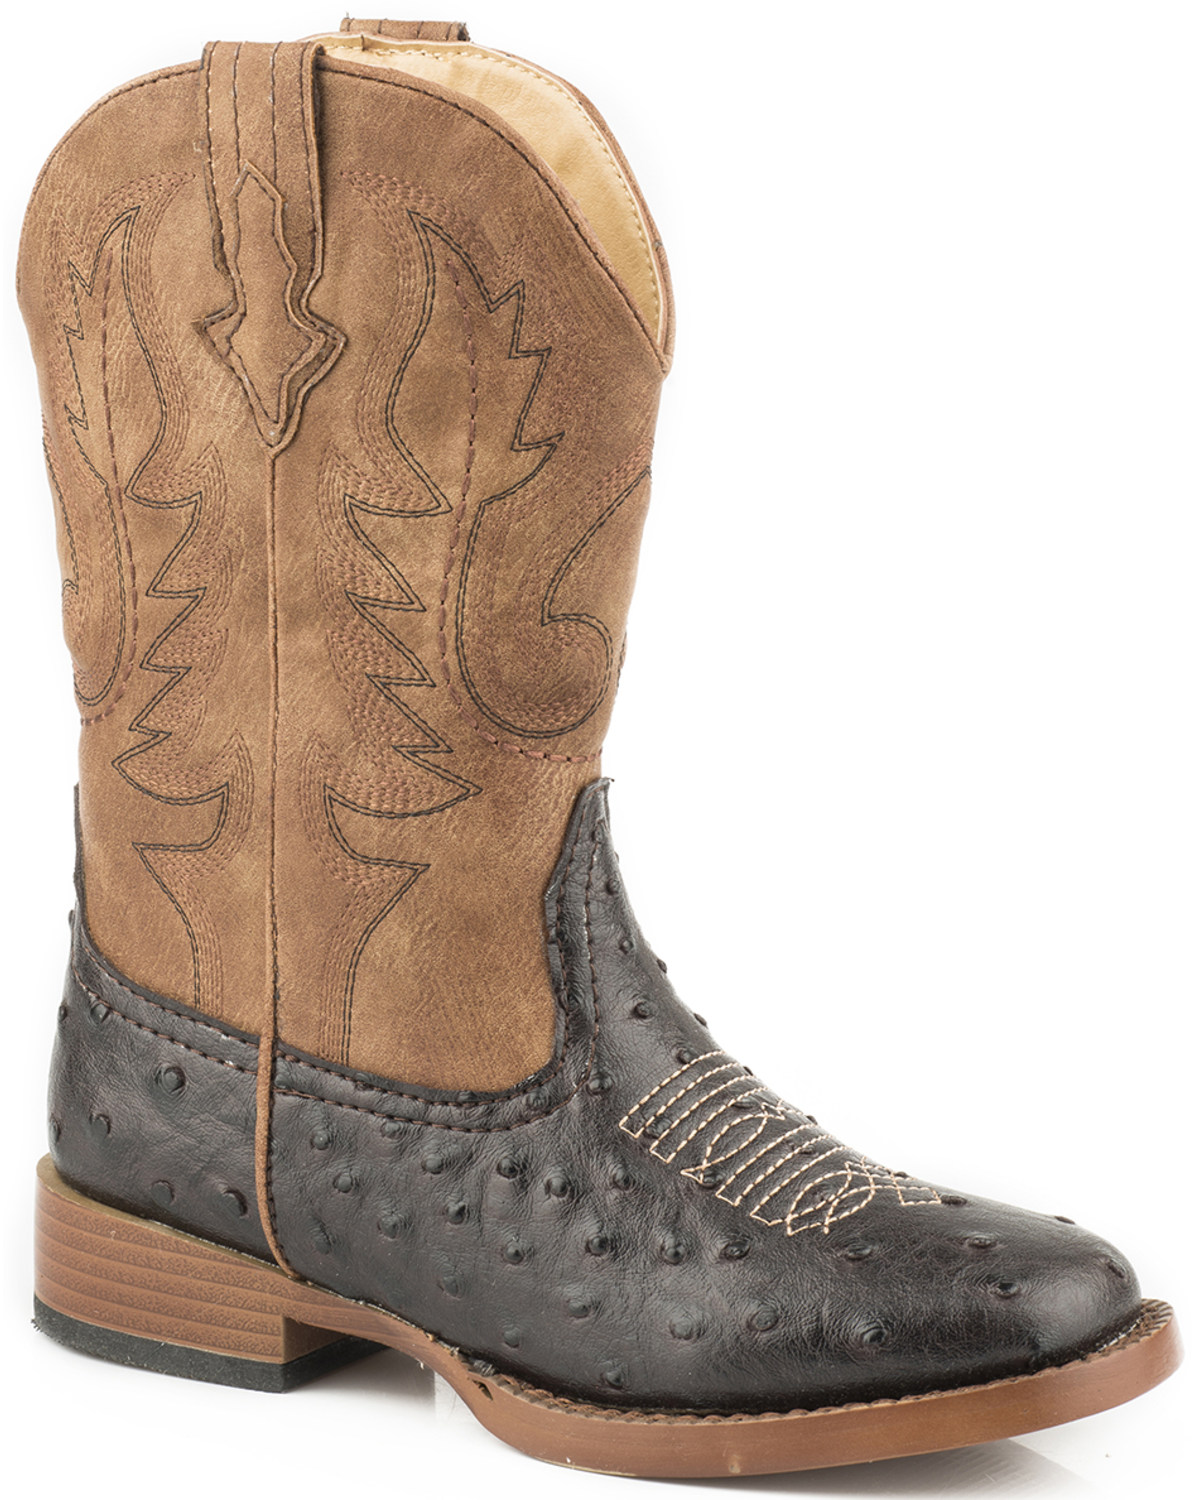 6a8bced34ff Roper Youth Boys' Brown Faux Ostrich Print Cowboy Boots - Square Toe